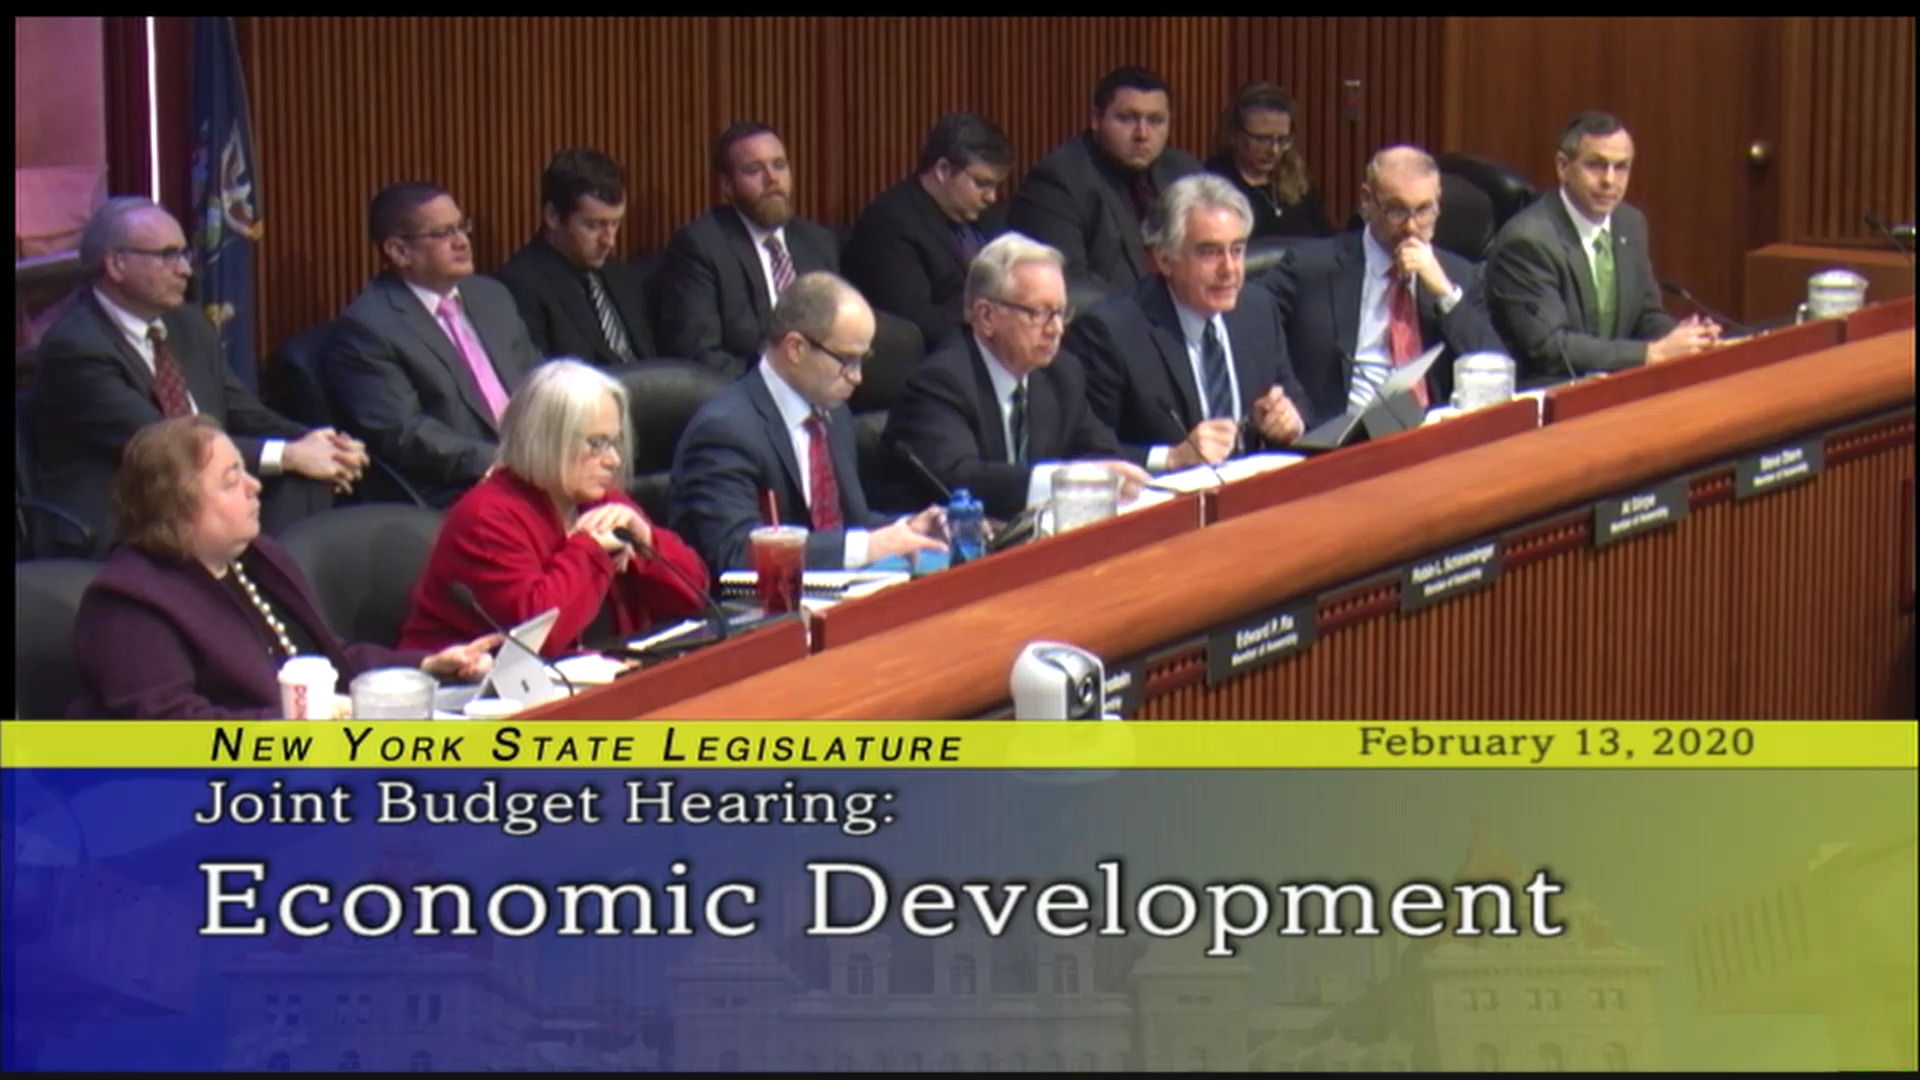 2020 Joint Budget Hearing on Economic Development